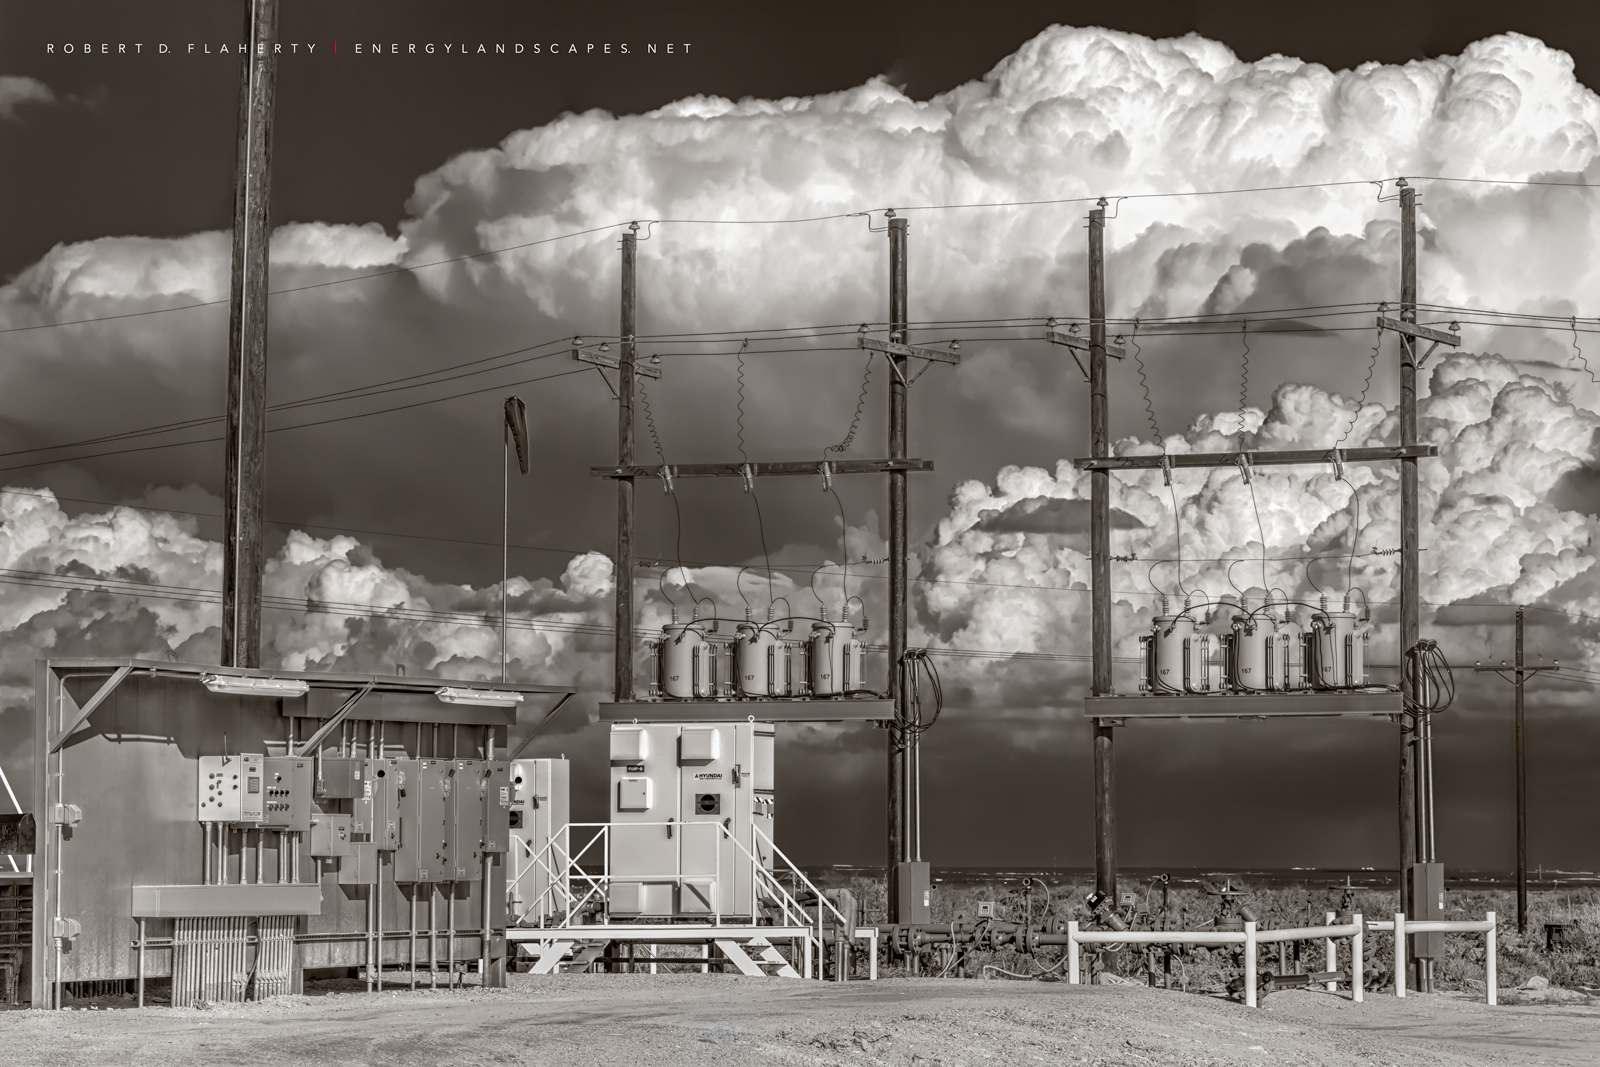 oilfield electrical assets, oilfield battery, thunderstorm, Delaware Basin, Cimarex, Dixie Battery, fine art, sepia, West Texas, Permian Basin, photo